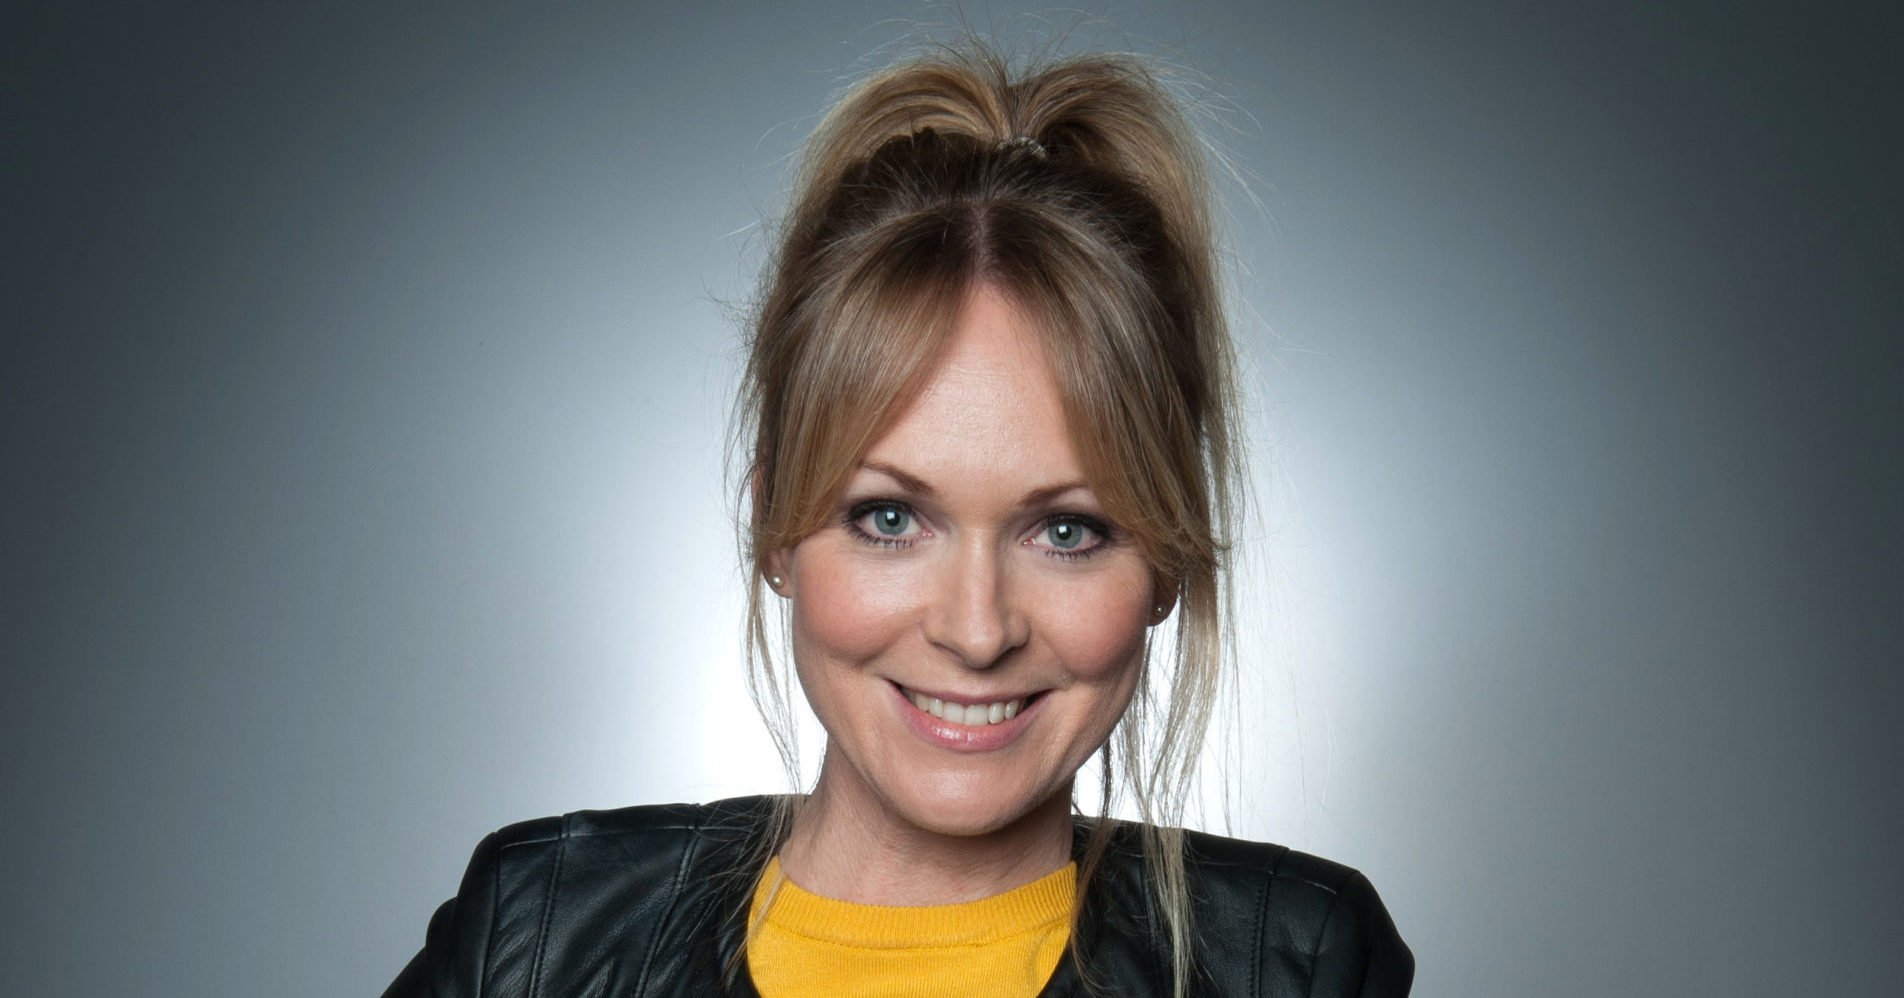 Emmerdale actress Michelle Hardwick would like to see Vanessa's mum come to the village